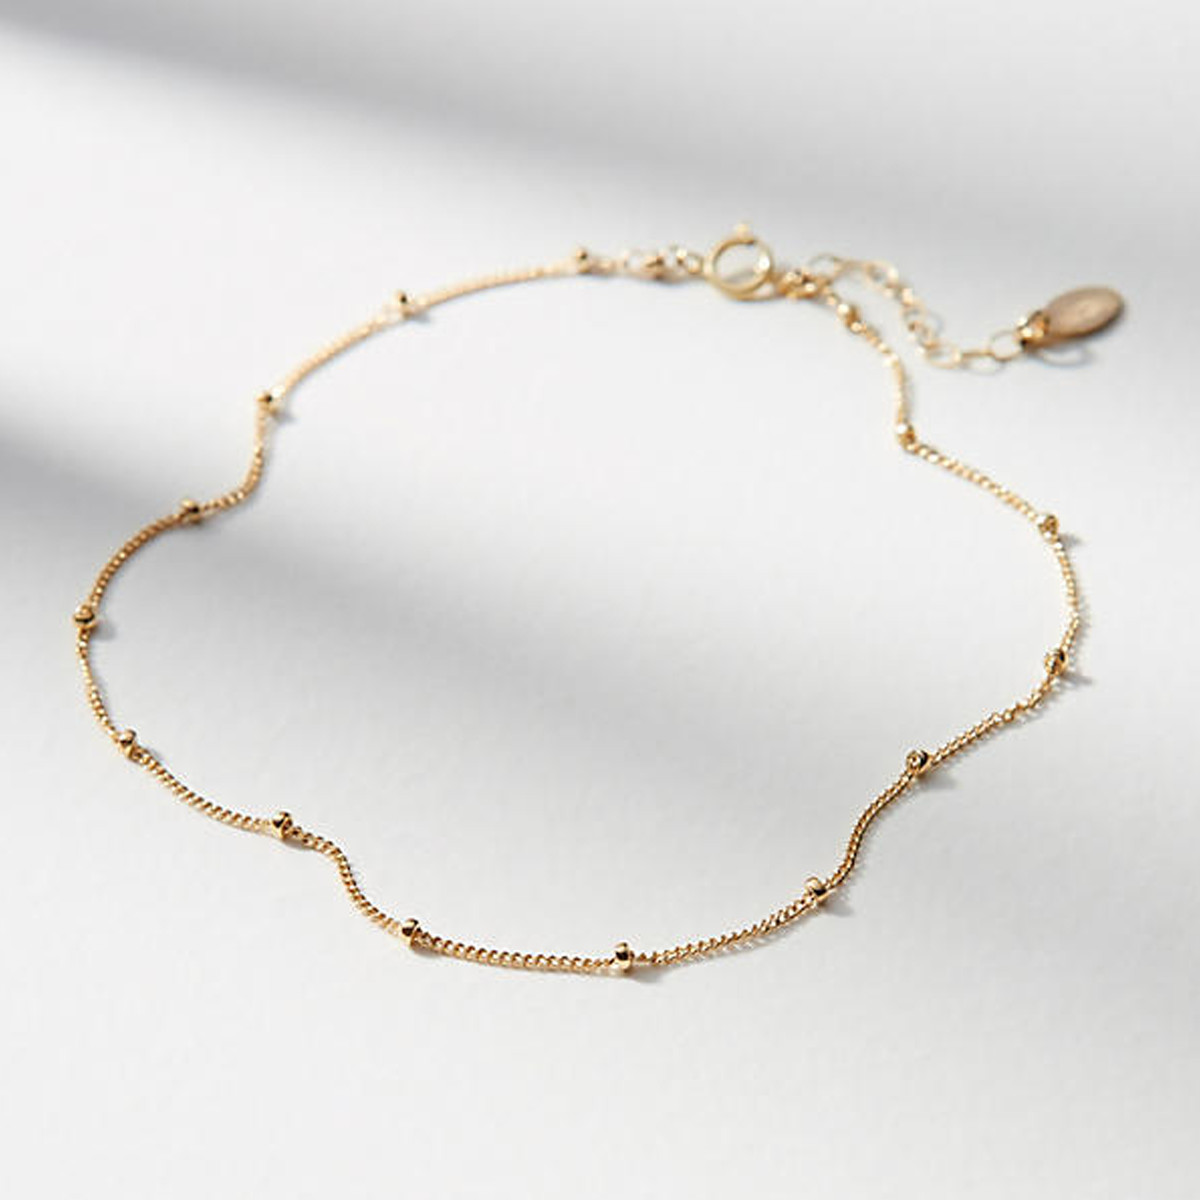 Anklet photo